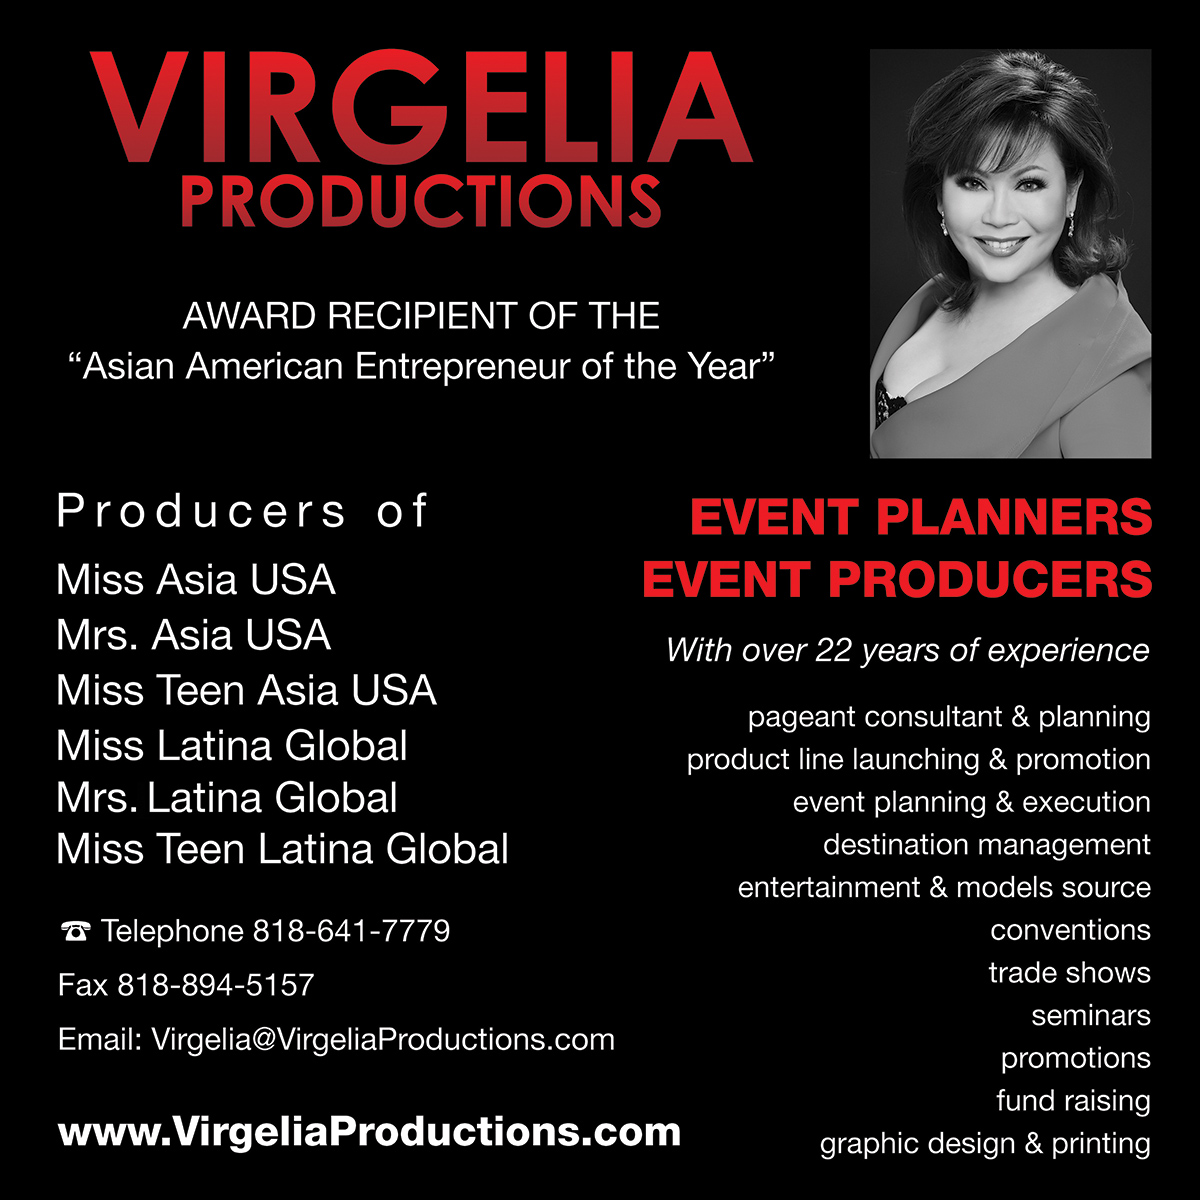 Virgelia Productions Inc